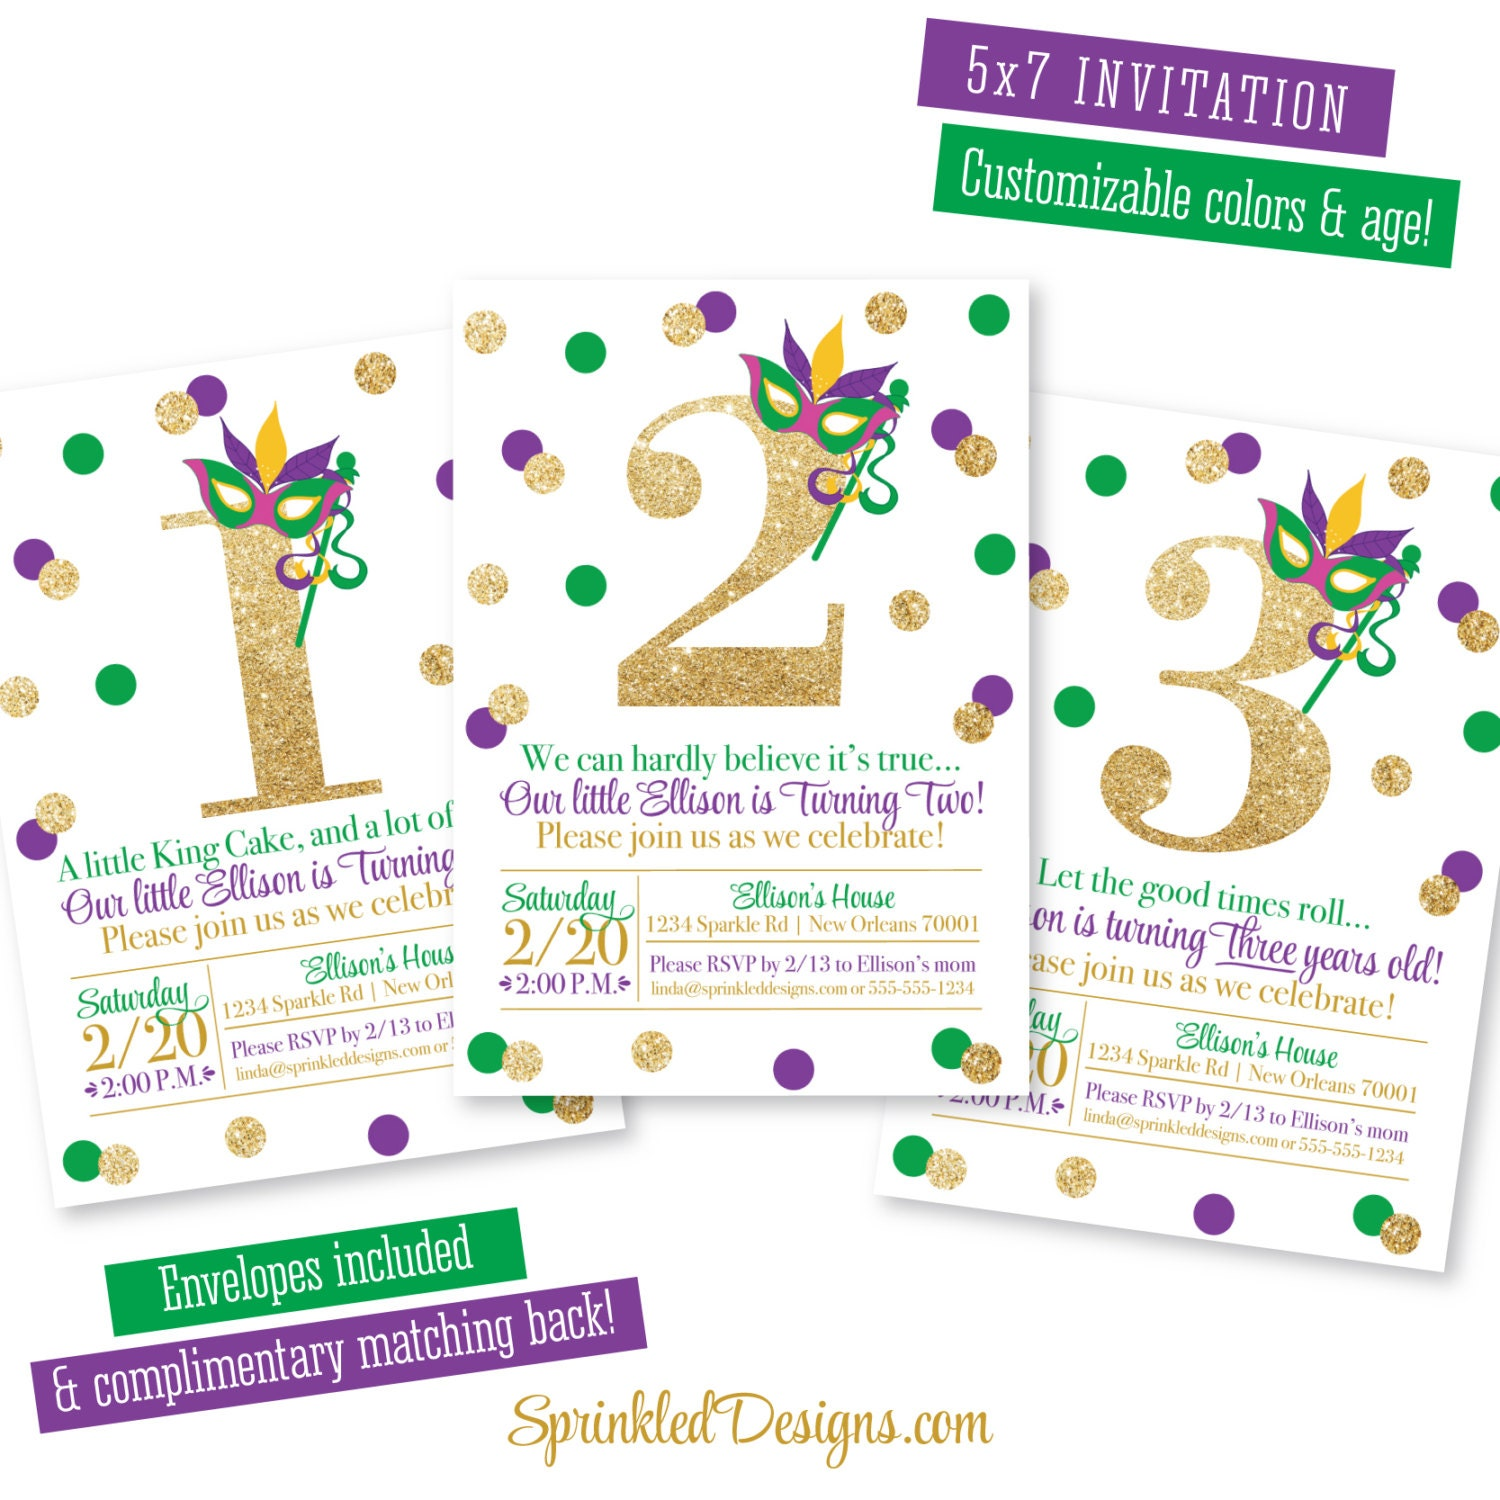 graphic relating to Free Printable Mardi Gras Invitations named Mardi Gras Birthday Invitation - Red Eco-friendly Gold Glitter 1st 2nd 3rd 4th 5th 6th 7th 8th 9th Birthday Invitations, Fresh new Orleans Birthday Occasion